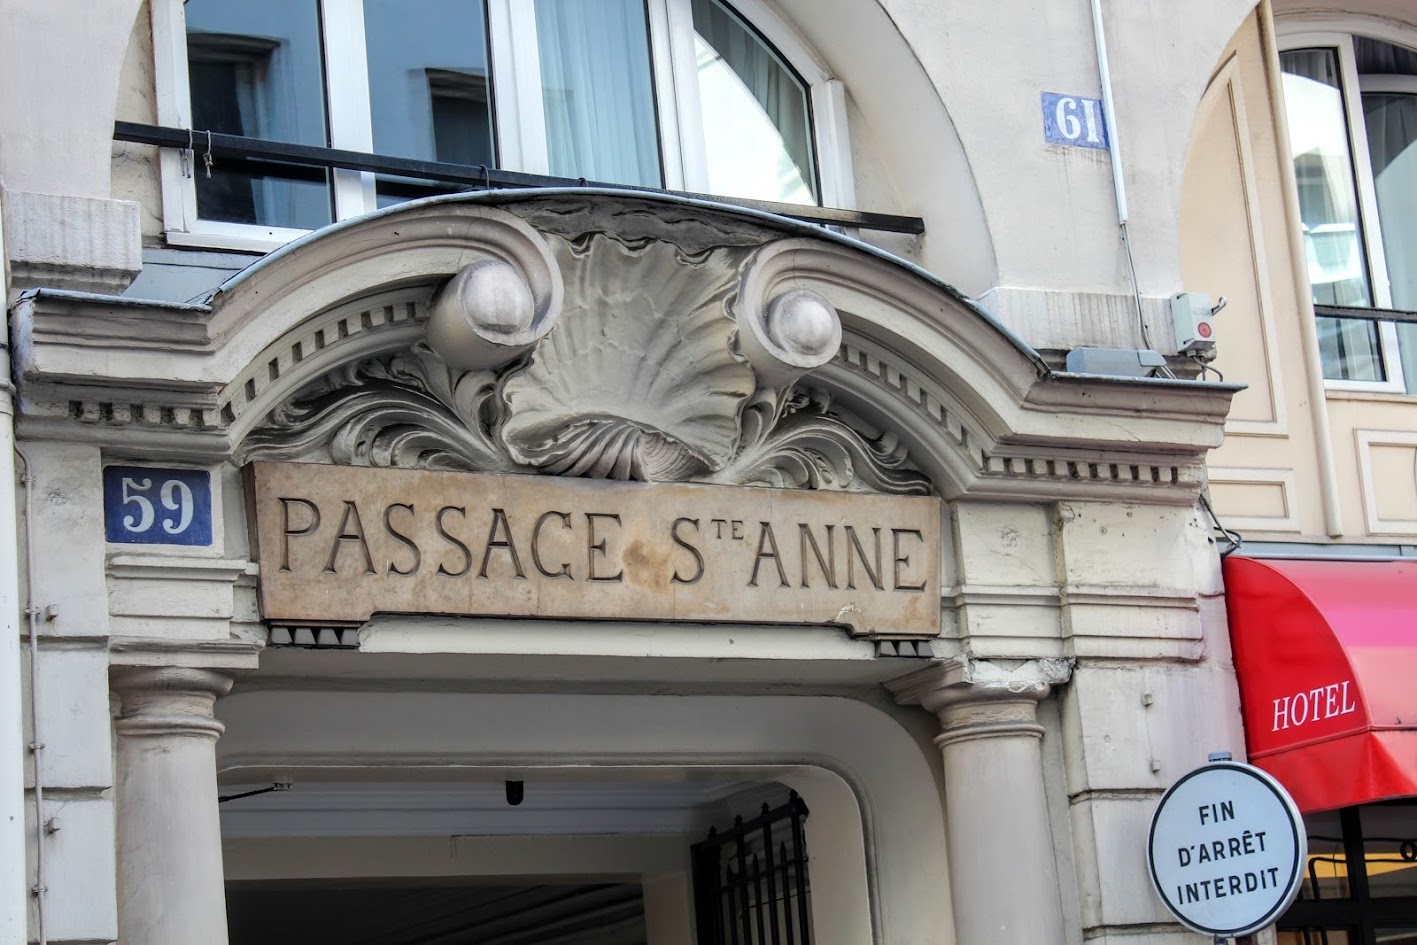 ALLAN KARDEC EM PARIS » Rue Sainte-Anne & Passage Sainte-Anne